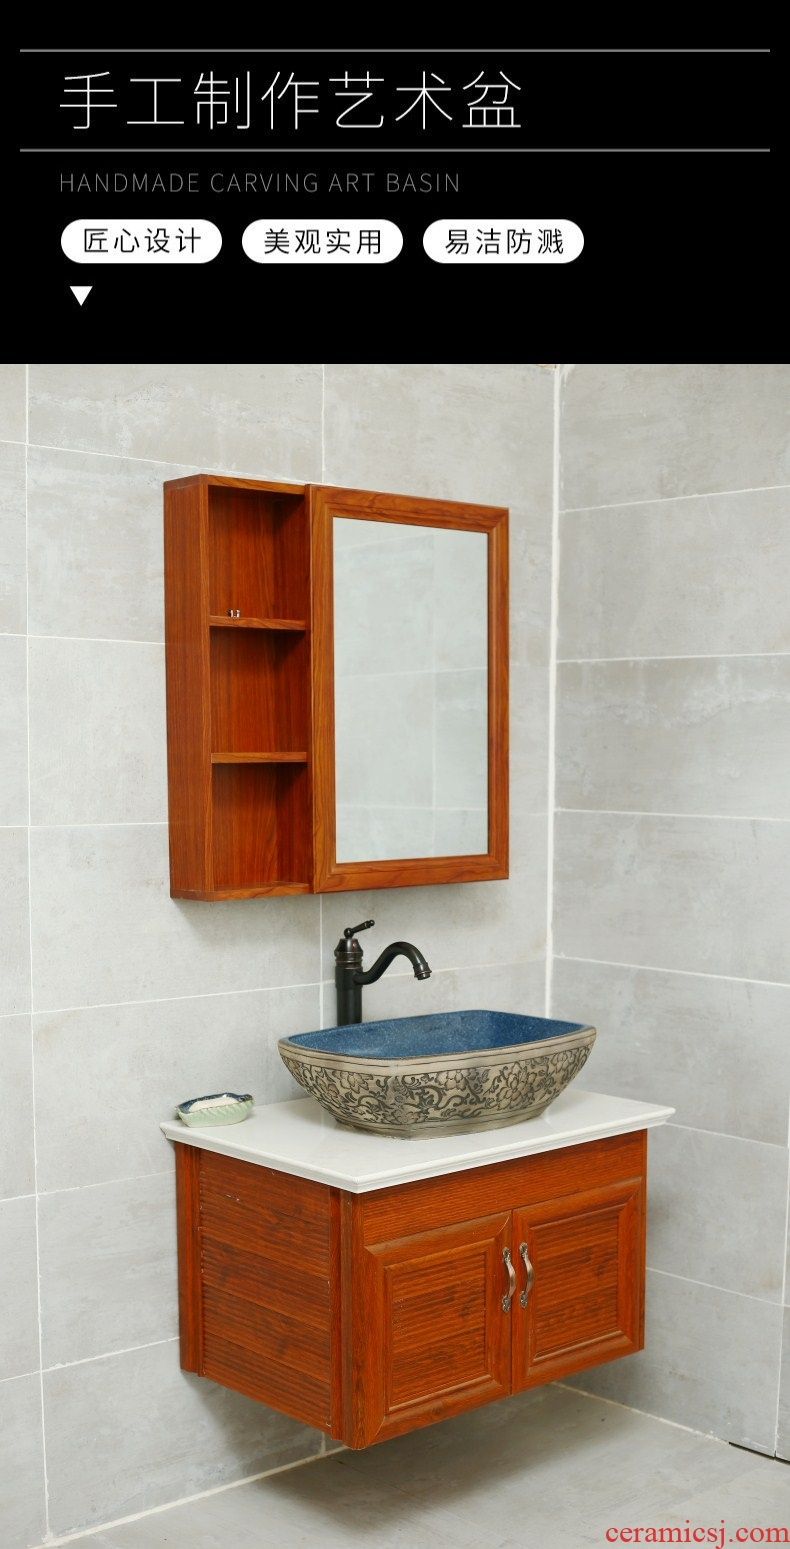 The Mediterranean retro ceramic artists on The stage basin square toilet lavabo tuba basin is a new Chinese style